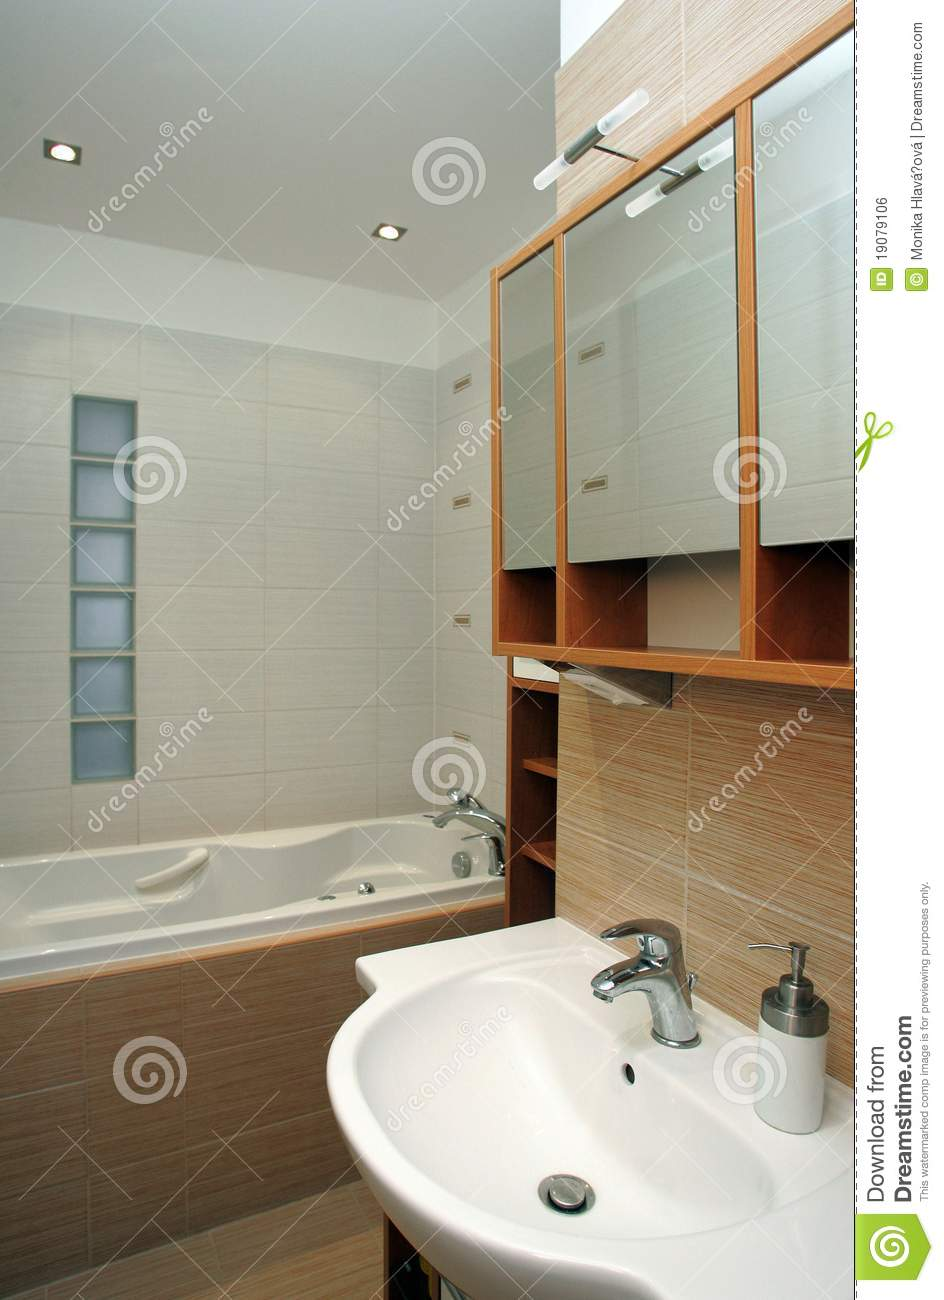 Bathroom Royalty Free Stock Image Image 19079106